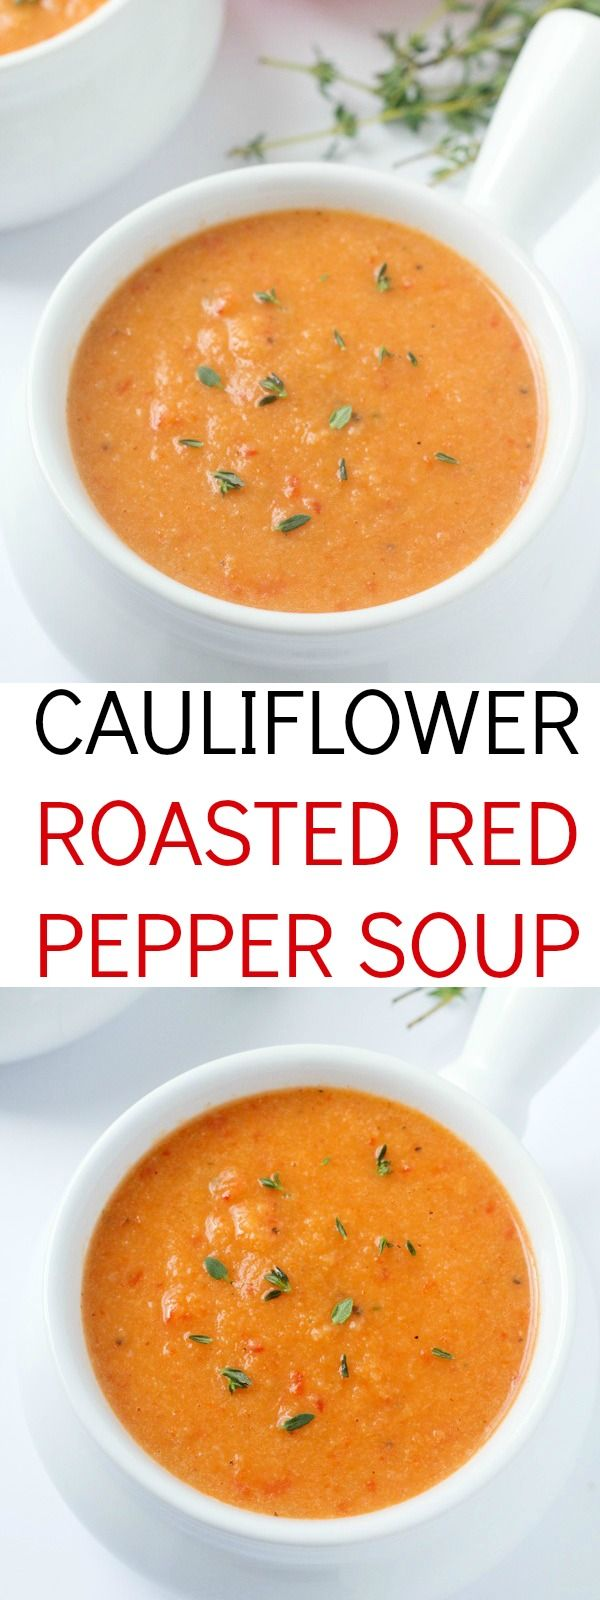 An out-of-this-world delicious cauliflower roasted red pepper soup recipe! This will be your new favorite soup – it's ours!